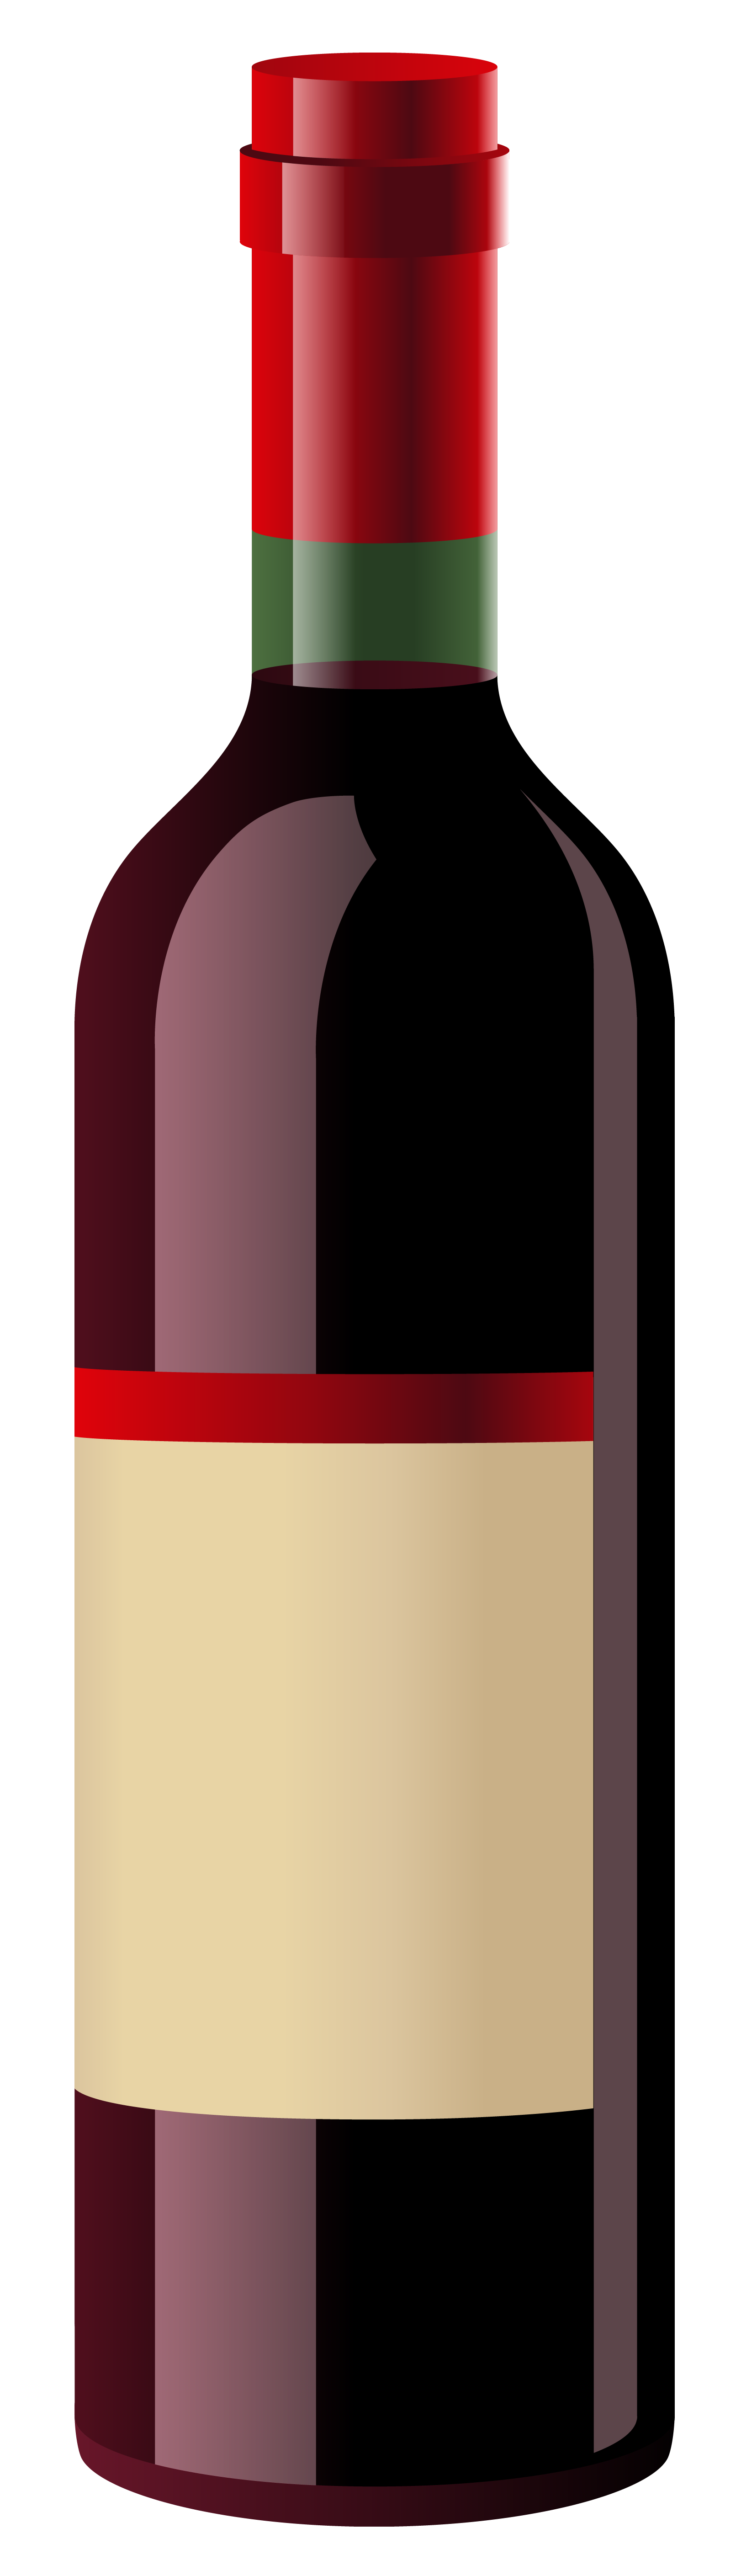 Red Wine Bottle PNG Clipart.